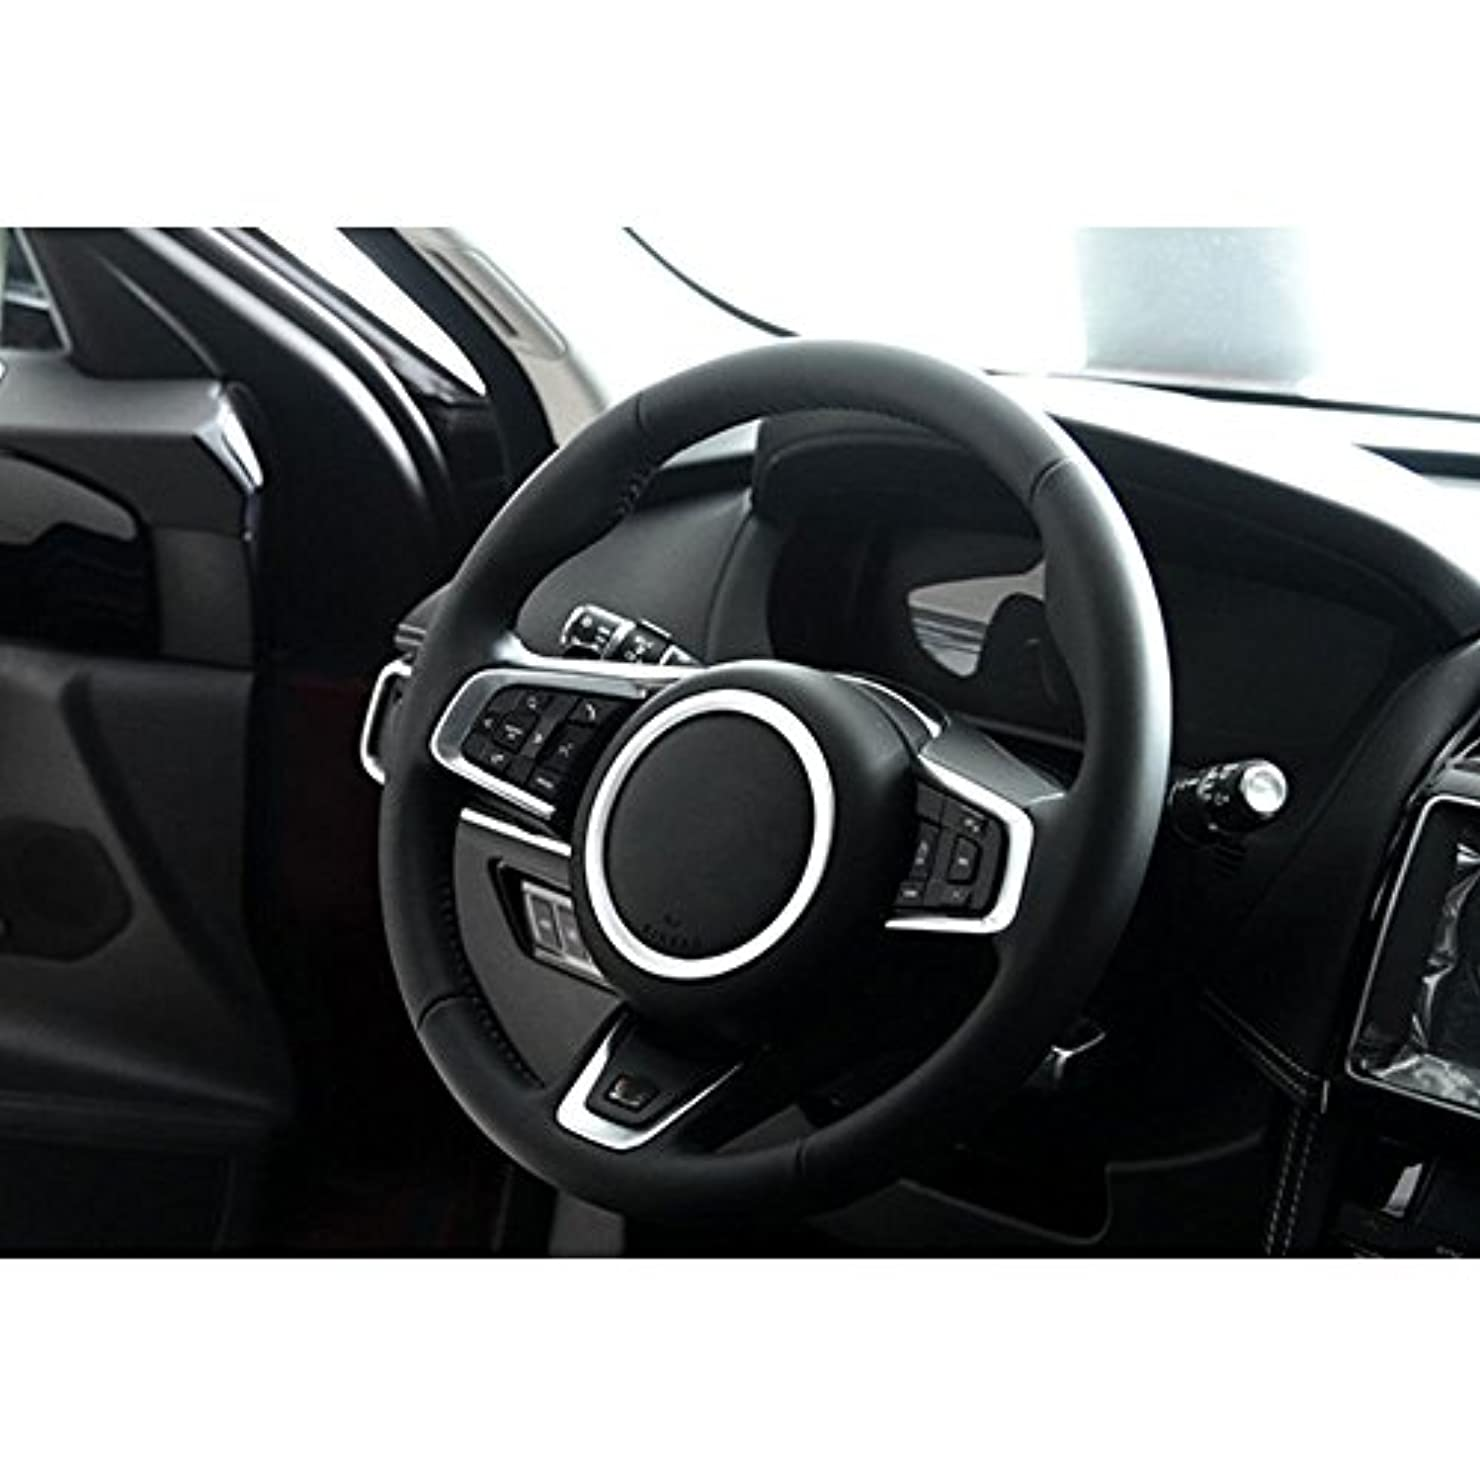 娘離婚コインJicorzo - Car Styling Steering Wheel Cover Trim Interior Chrome Decor Ring Sticker For Jaguar XF XE F-Pace F-Type...